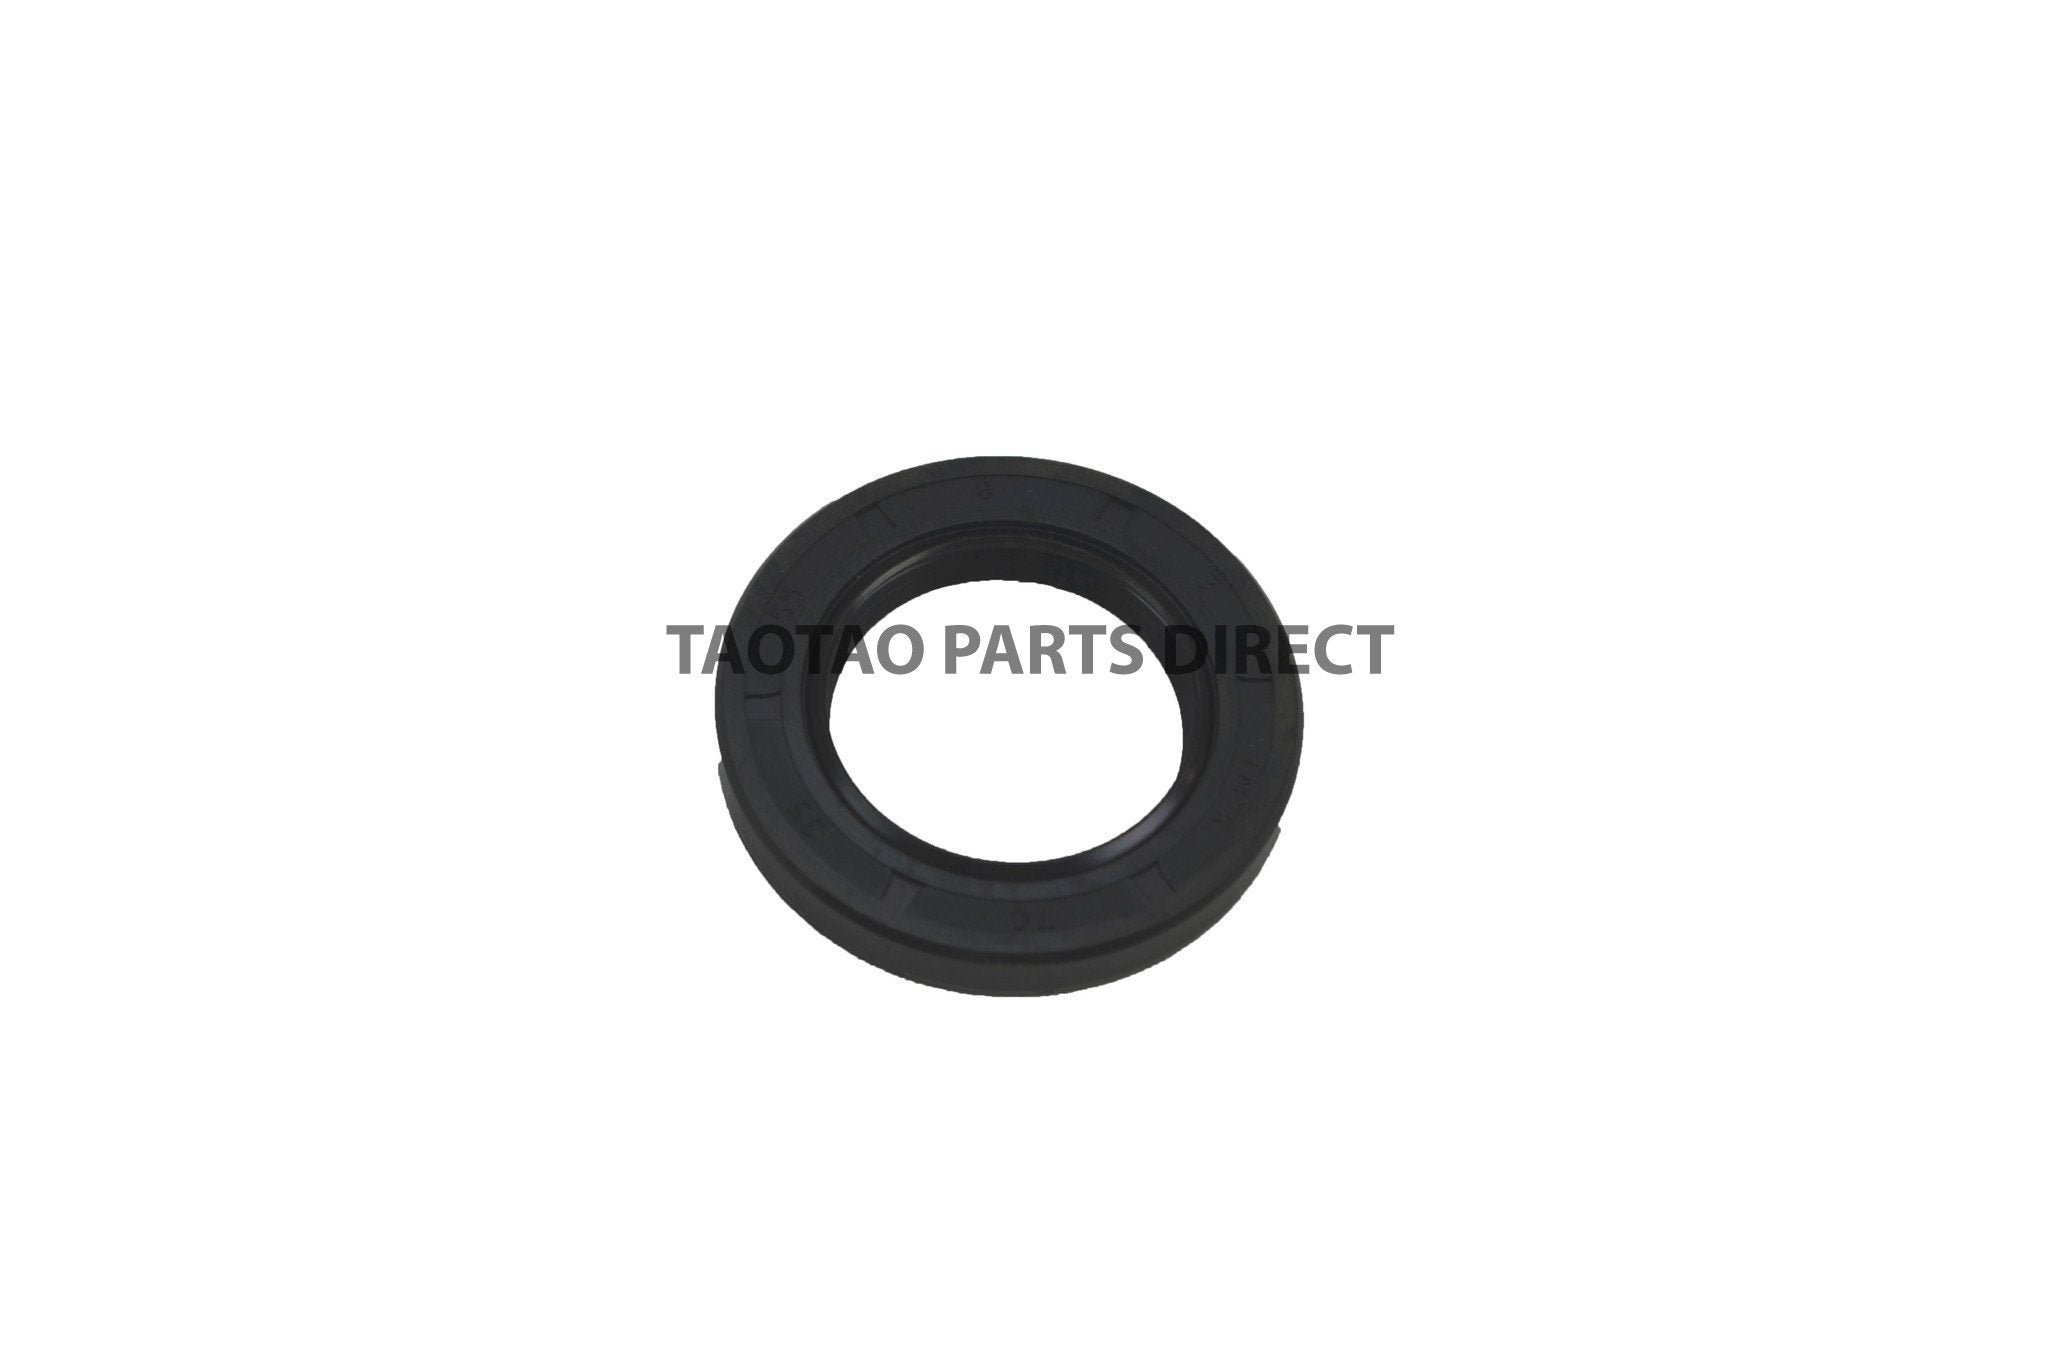 ATA125F1 Axle Bearing Seal - TaoTao Parts Direct